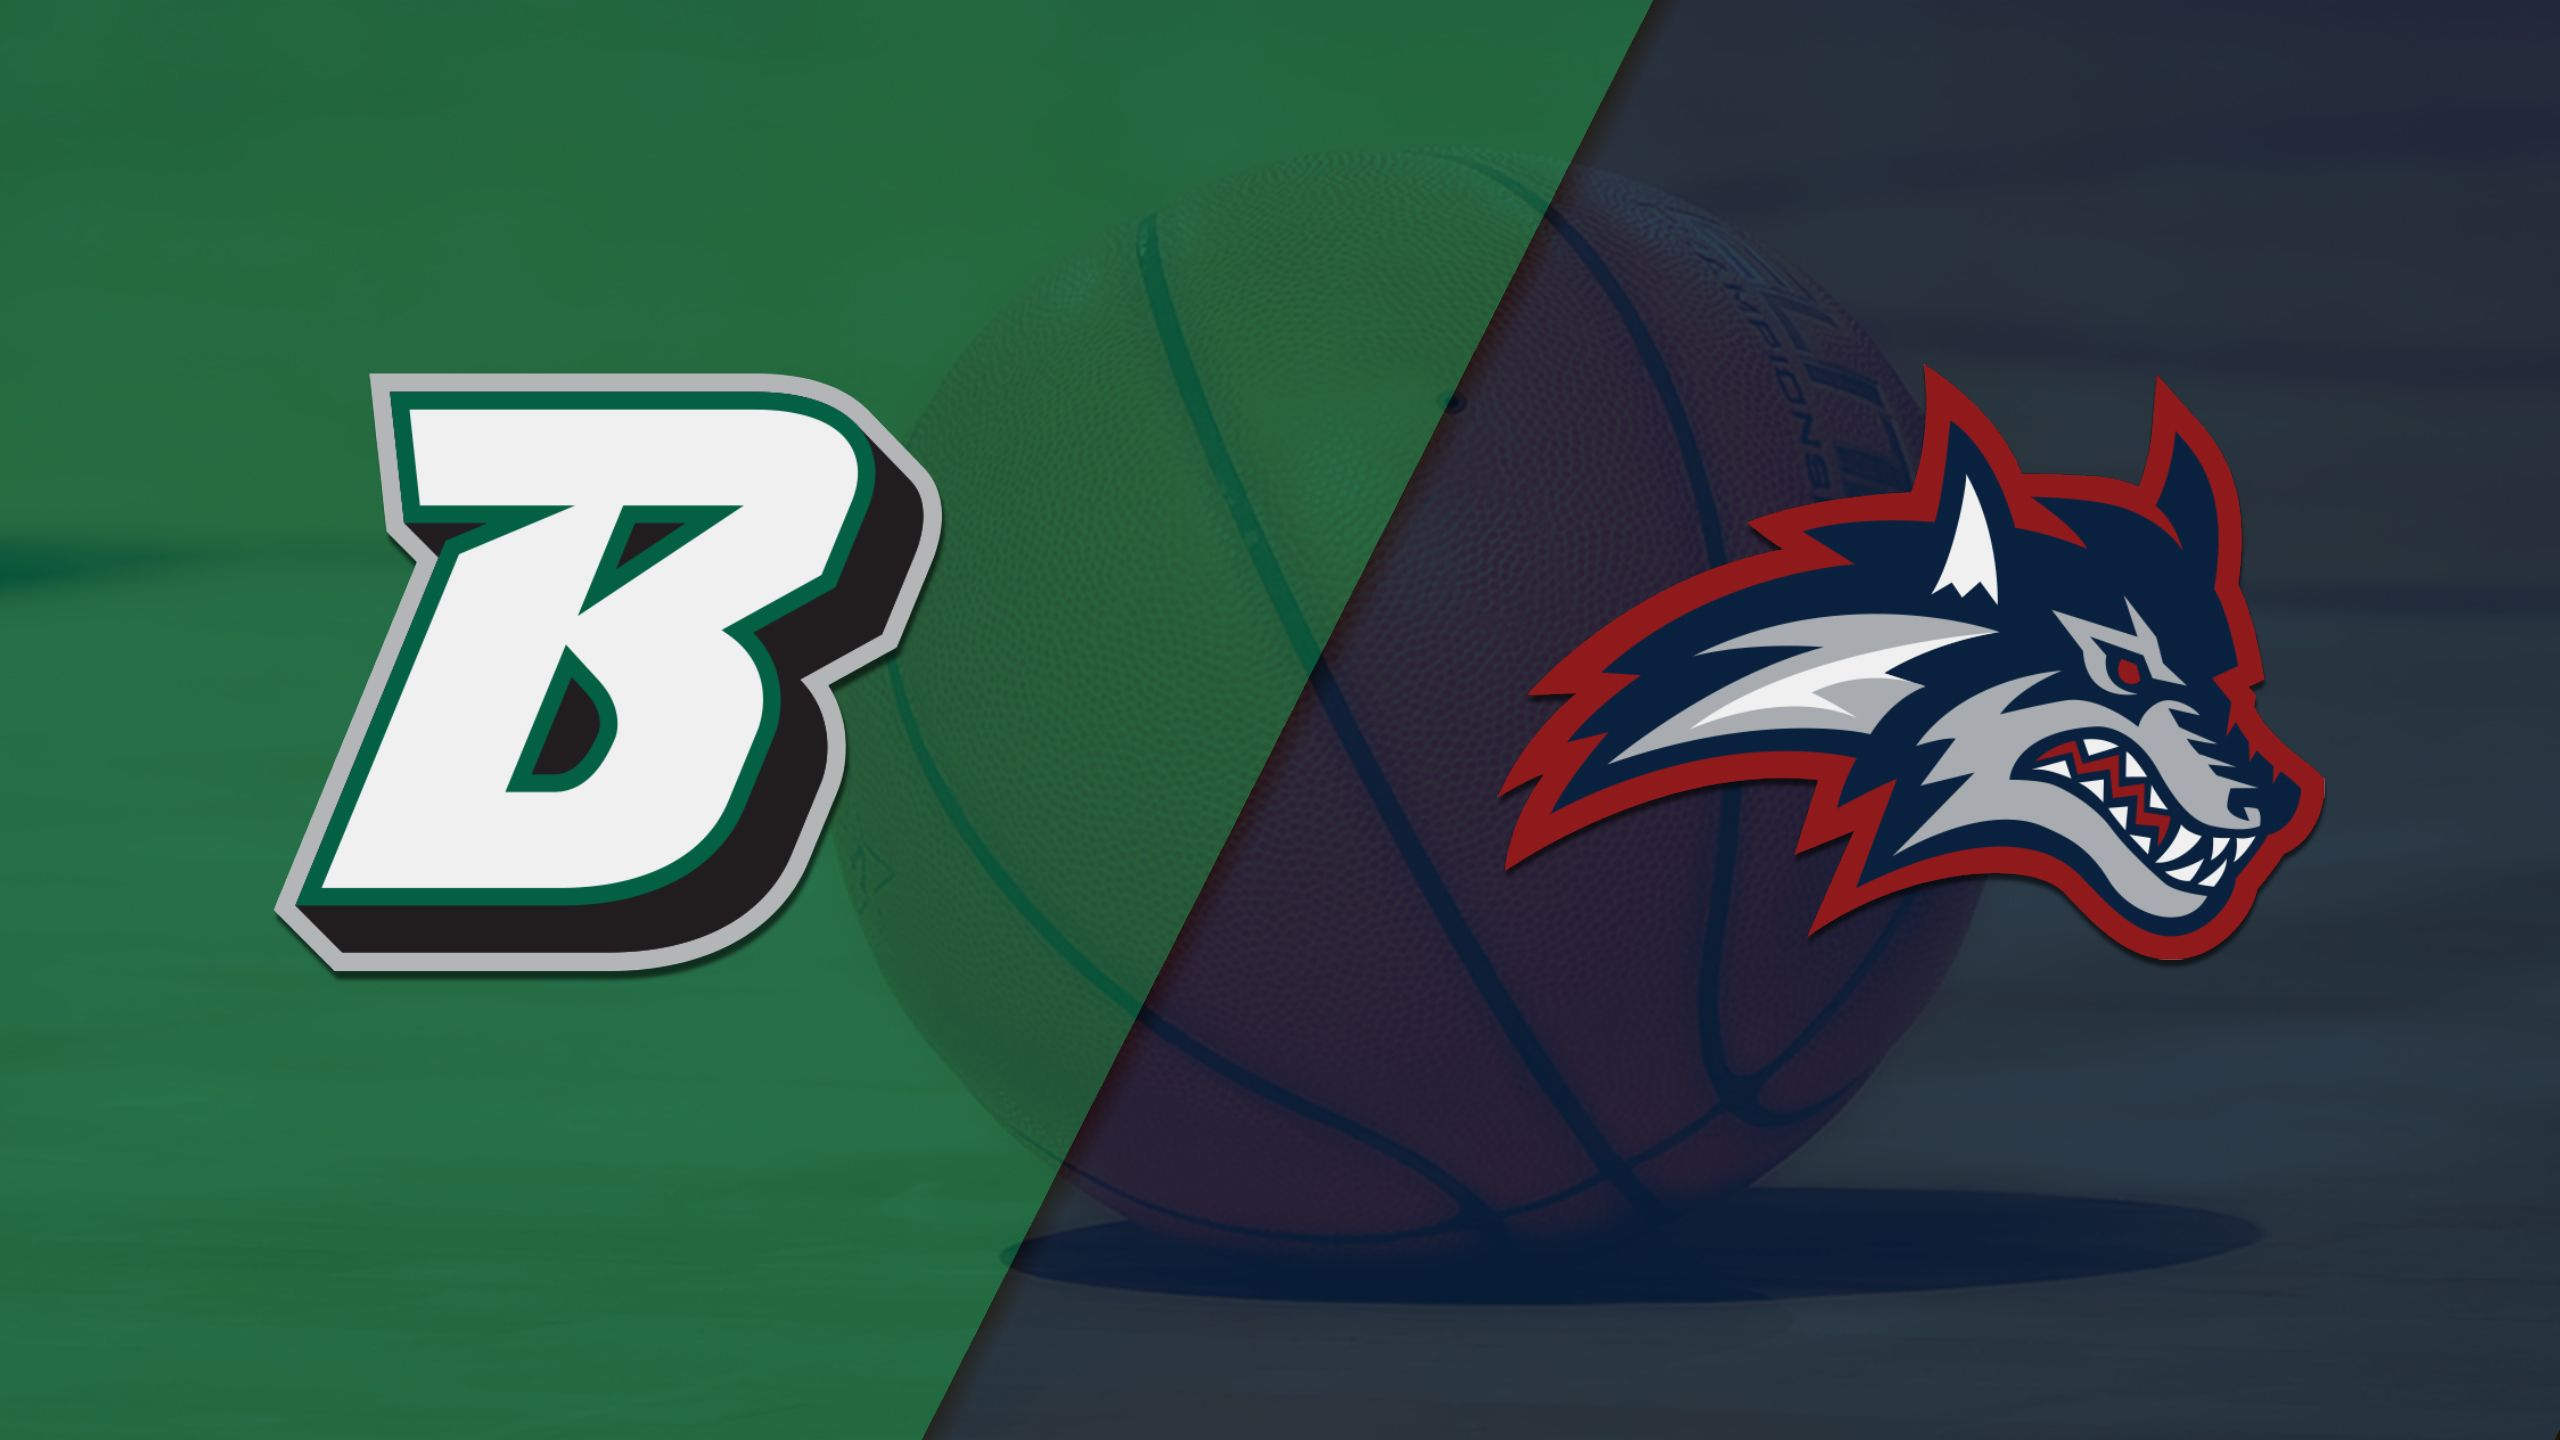 Binghamton vs. Stony Brook (M Basketball)